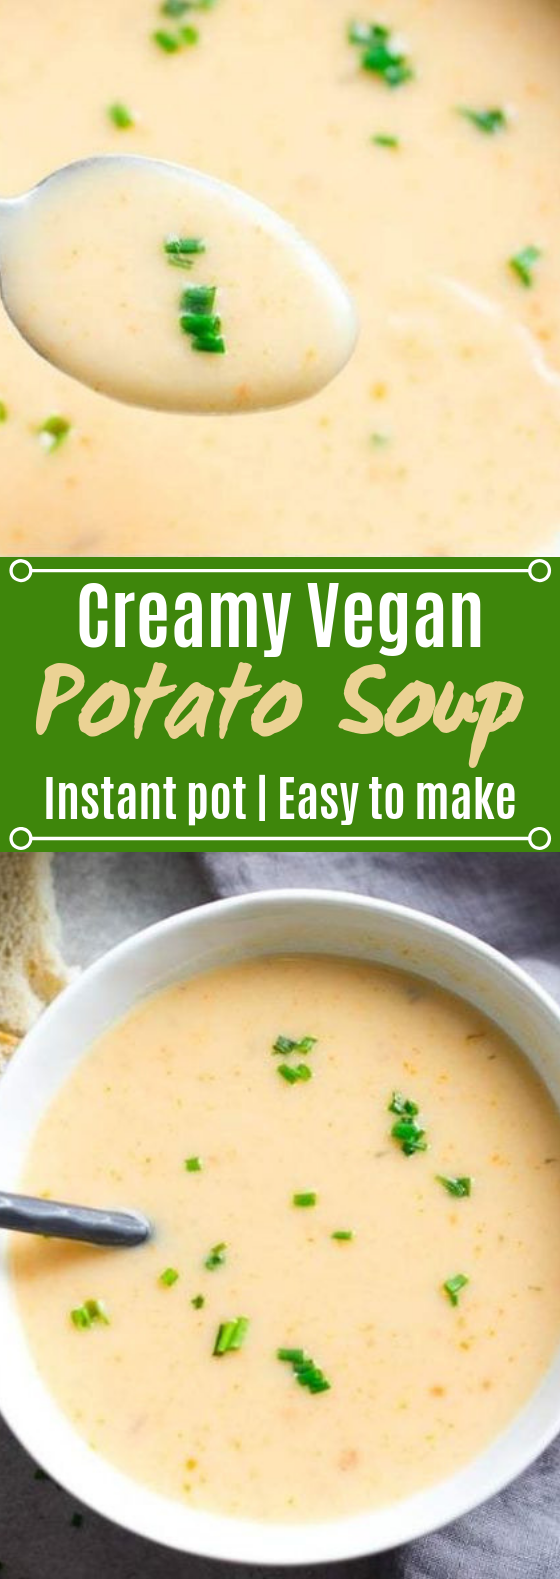 Easy Vegan Potato Soup #soup #vegetarian